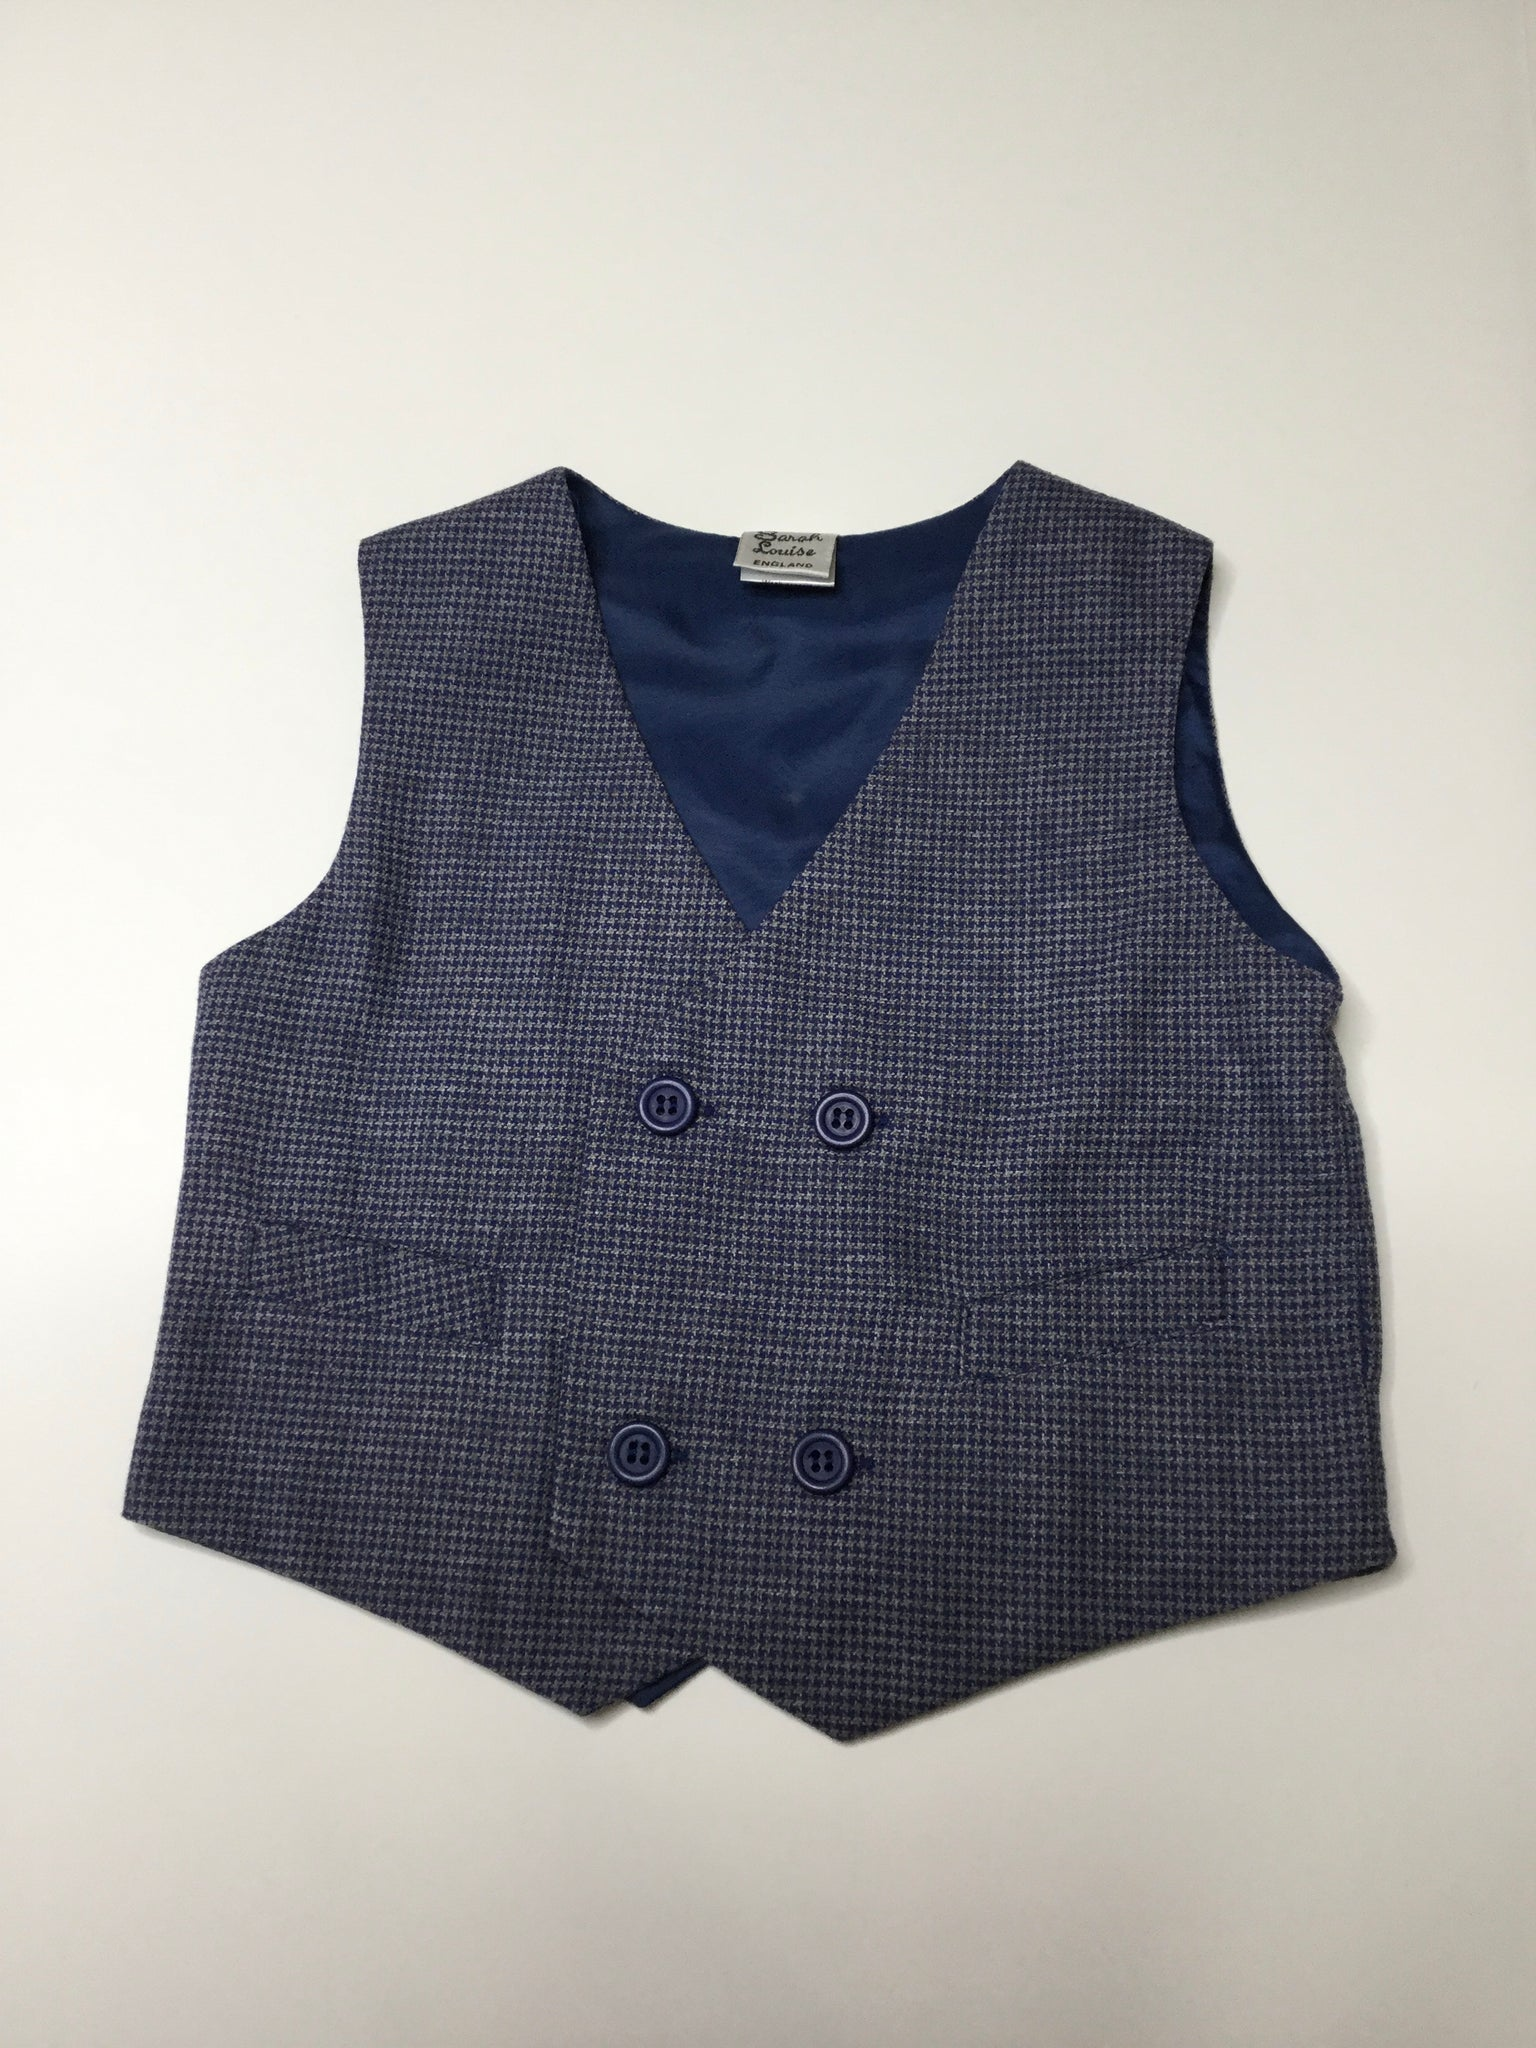 Sarah Louise Navy Tweed Vest boys